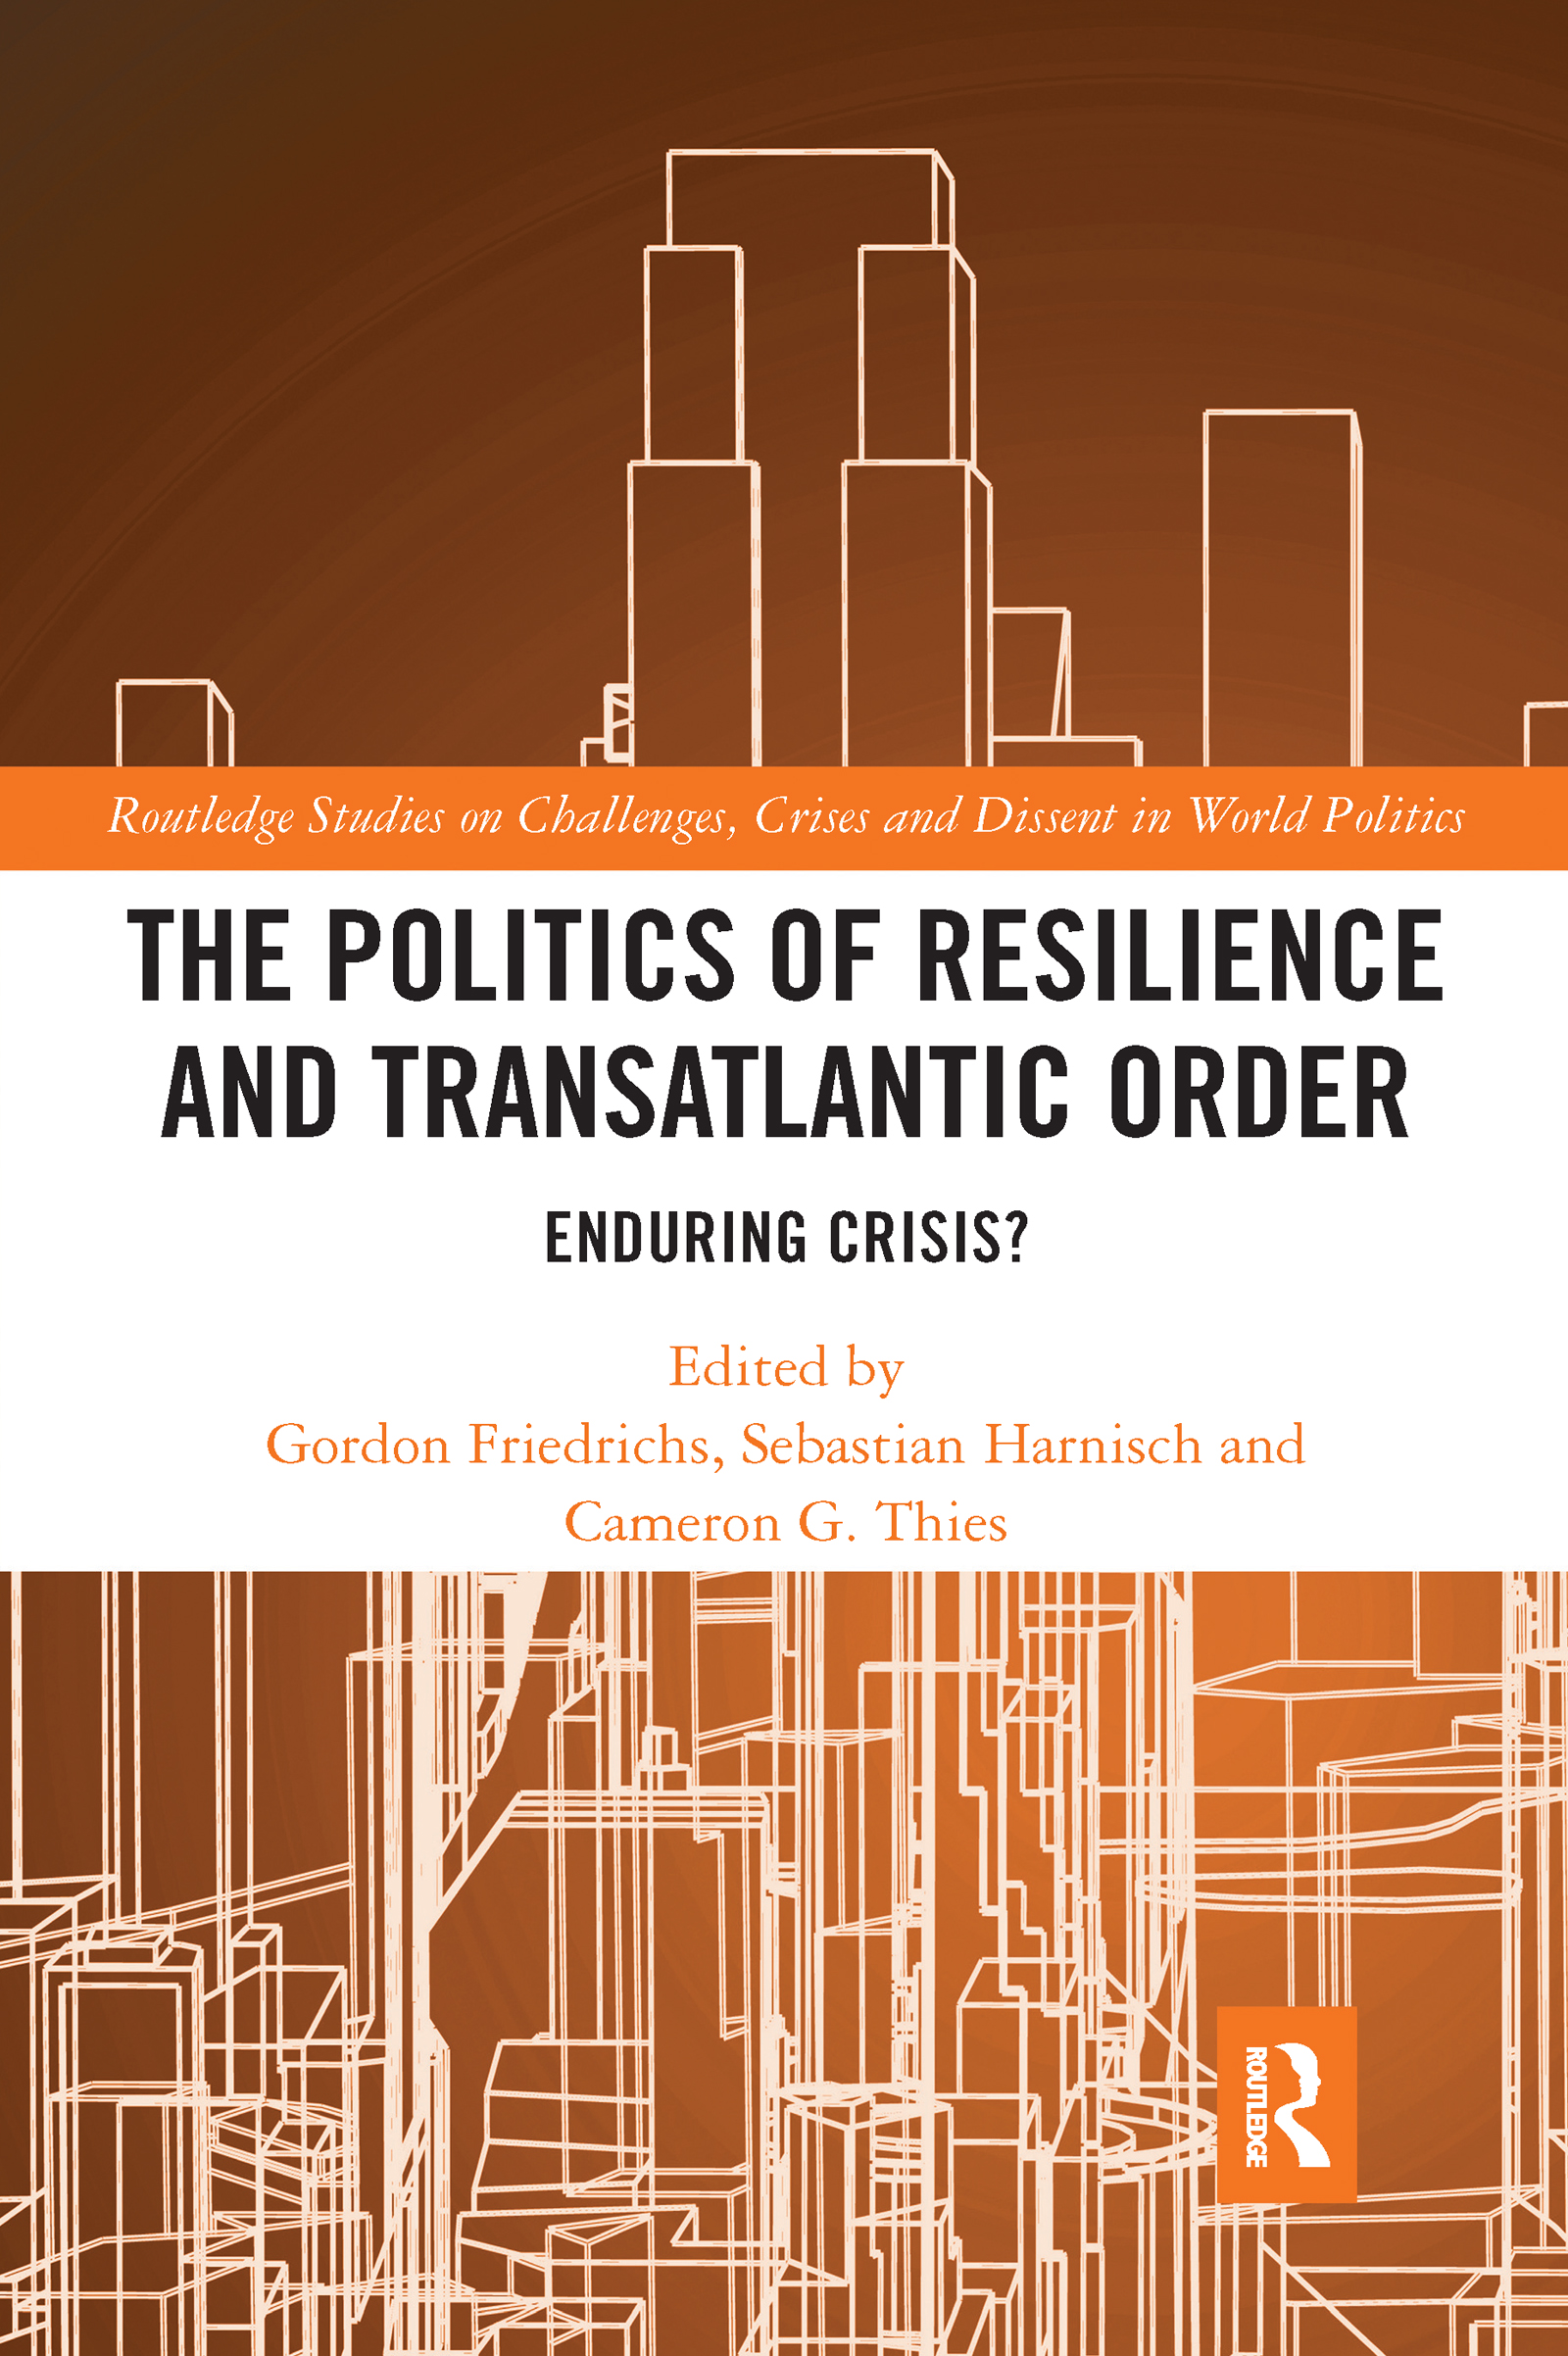 The Politics of Resilience and Transatlantic Order